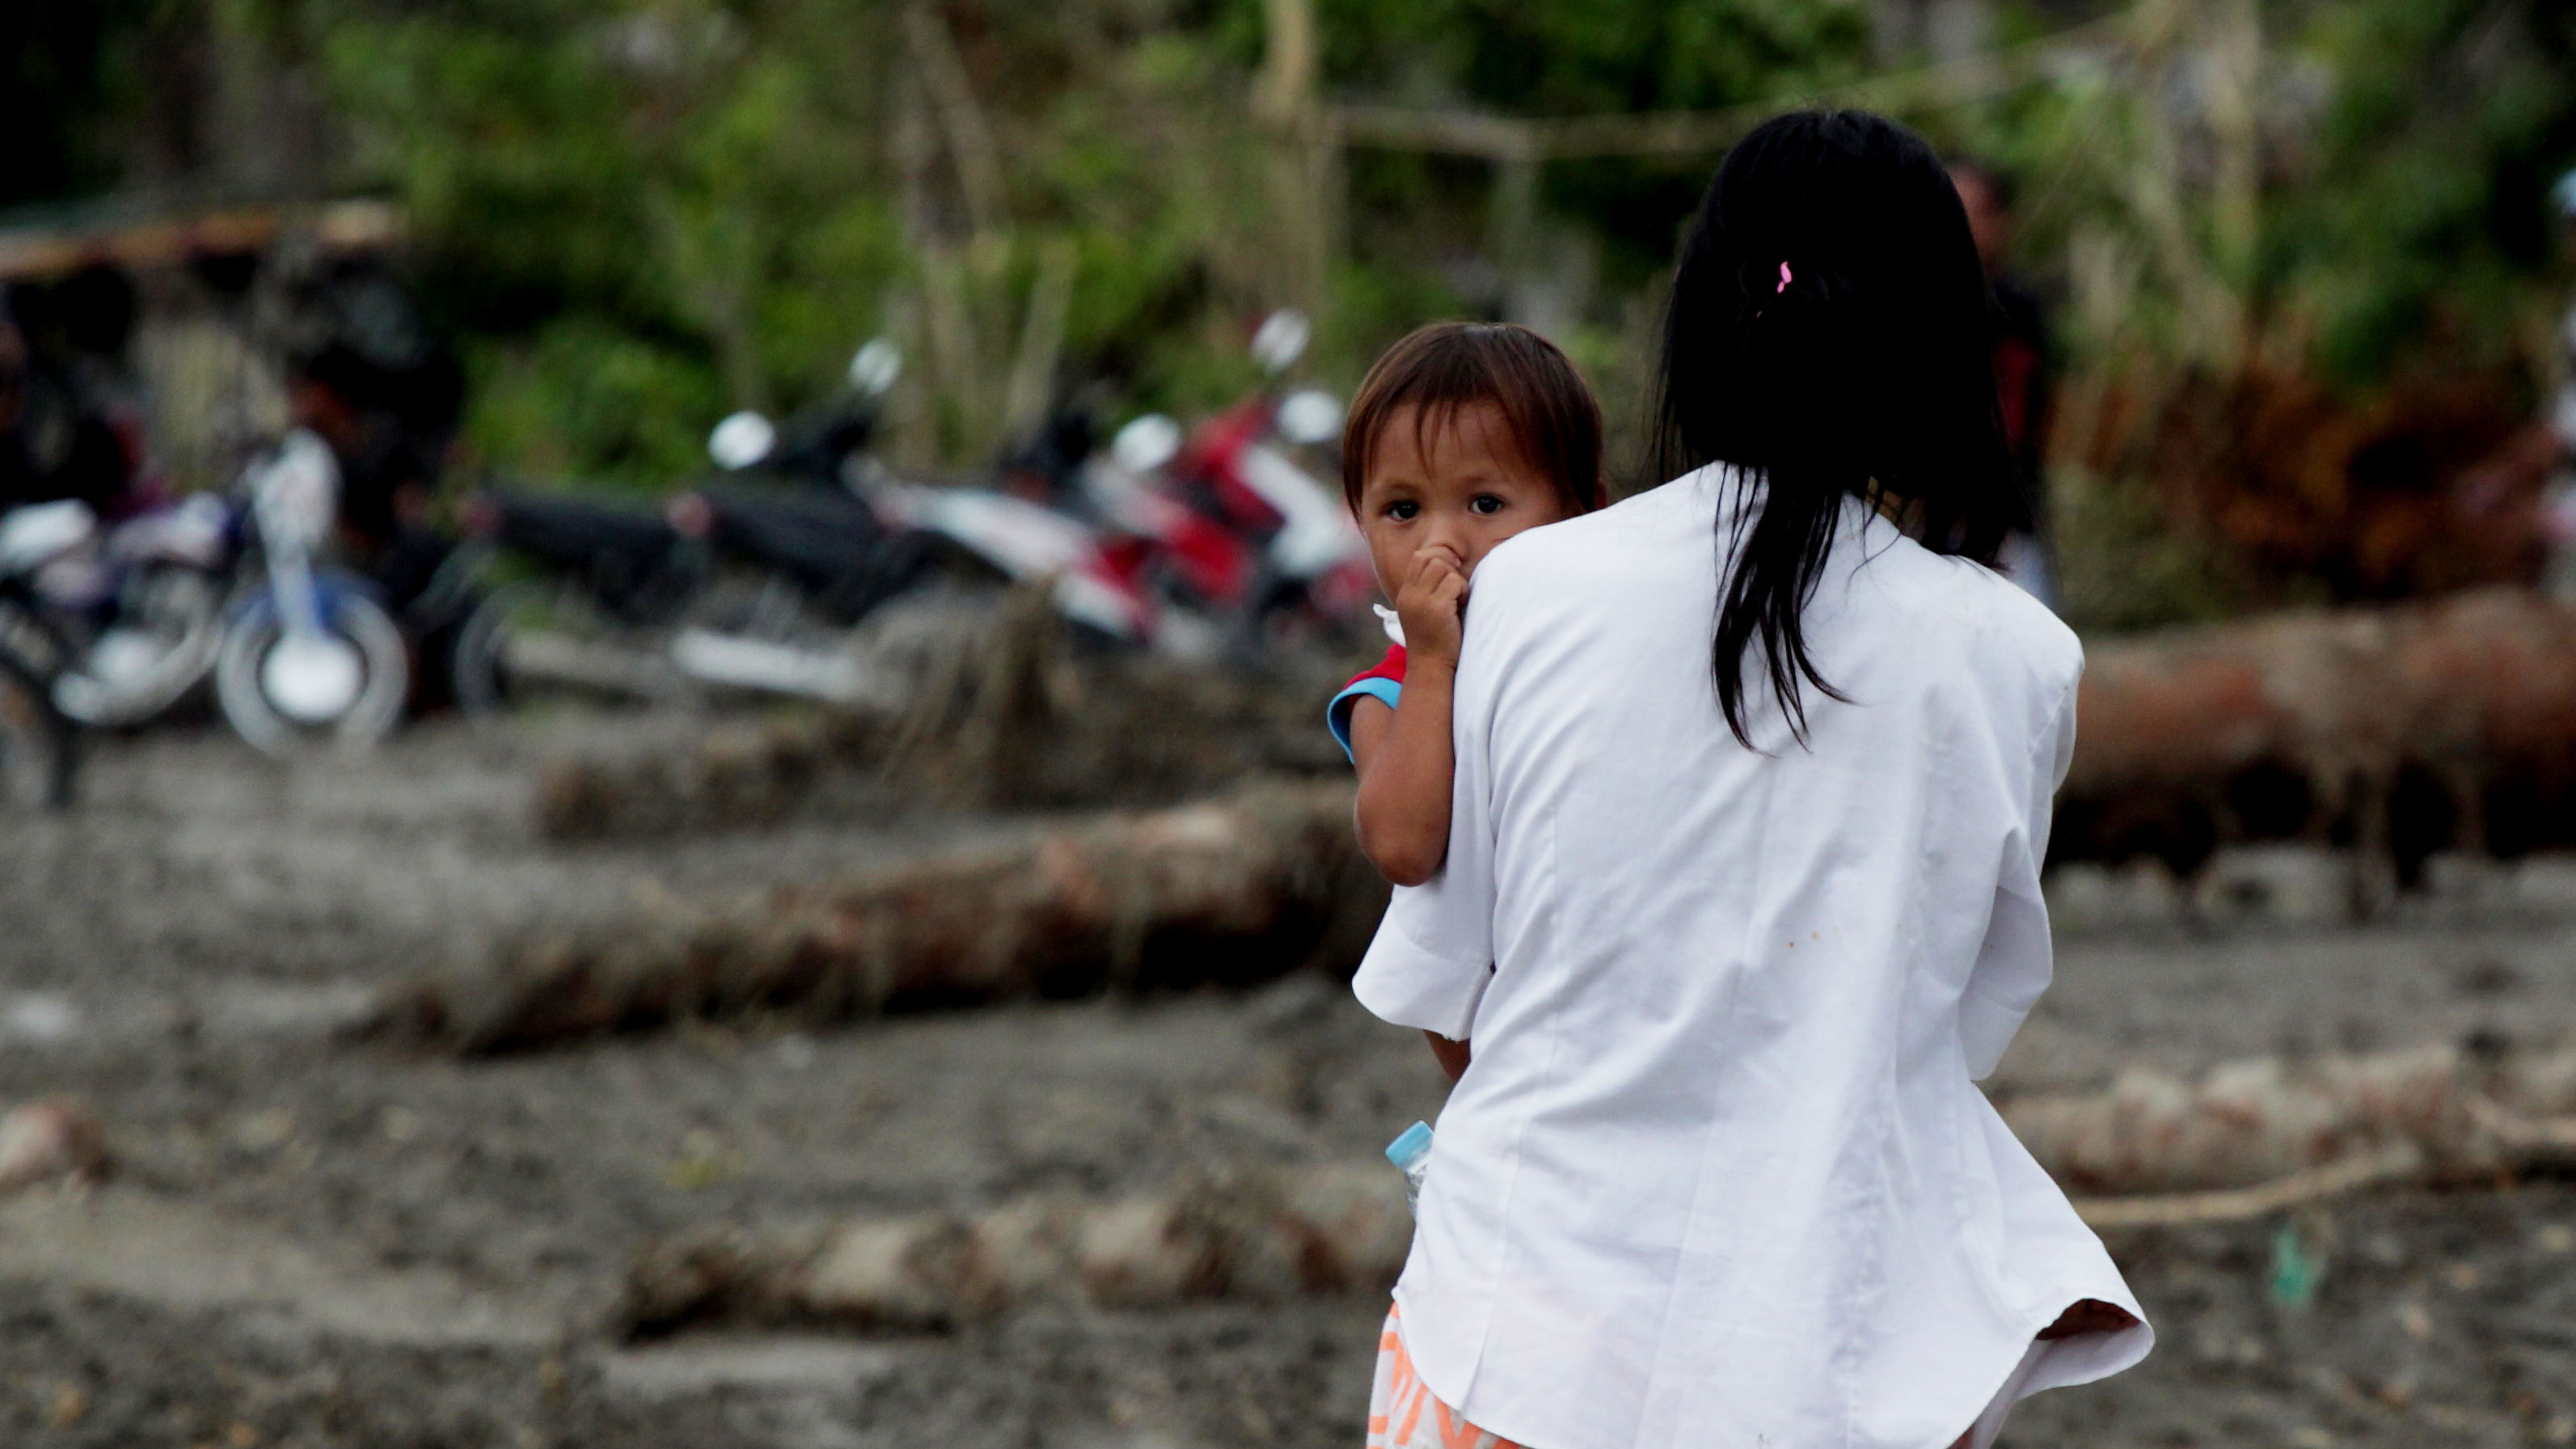 A mother and her young child return to their devastated farming village in Mindanao. Typhoon Bopha struck the island on 4 December 2012, devastating livelihoods for millions